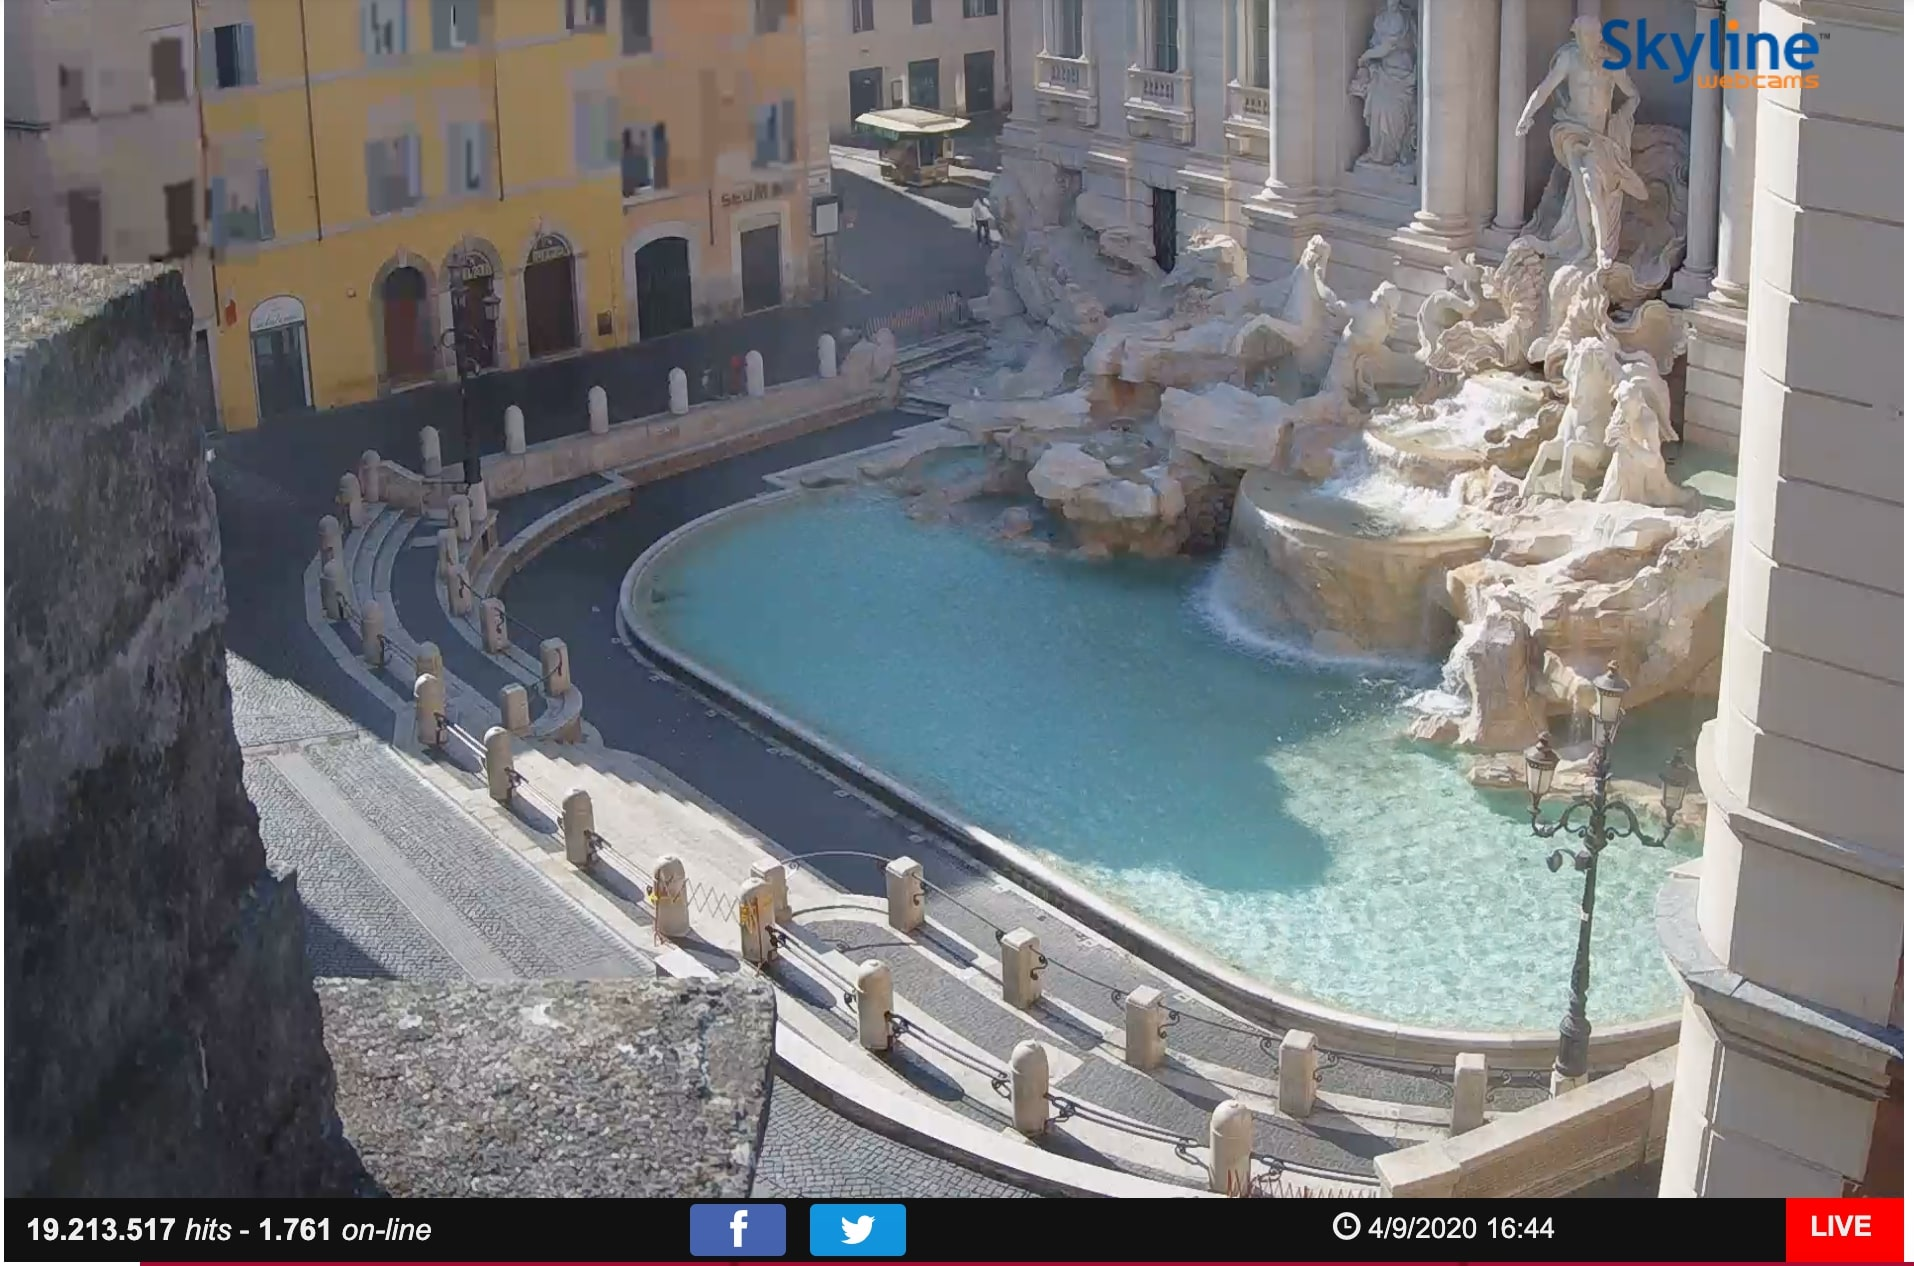 Live cam screenshot of Trevi Fountain in Rome